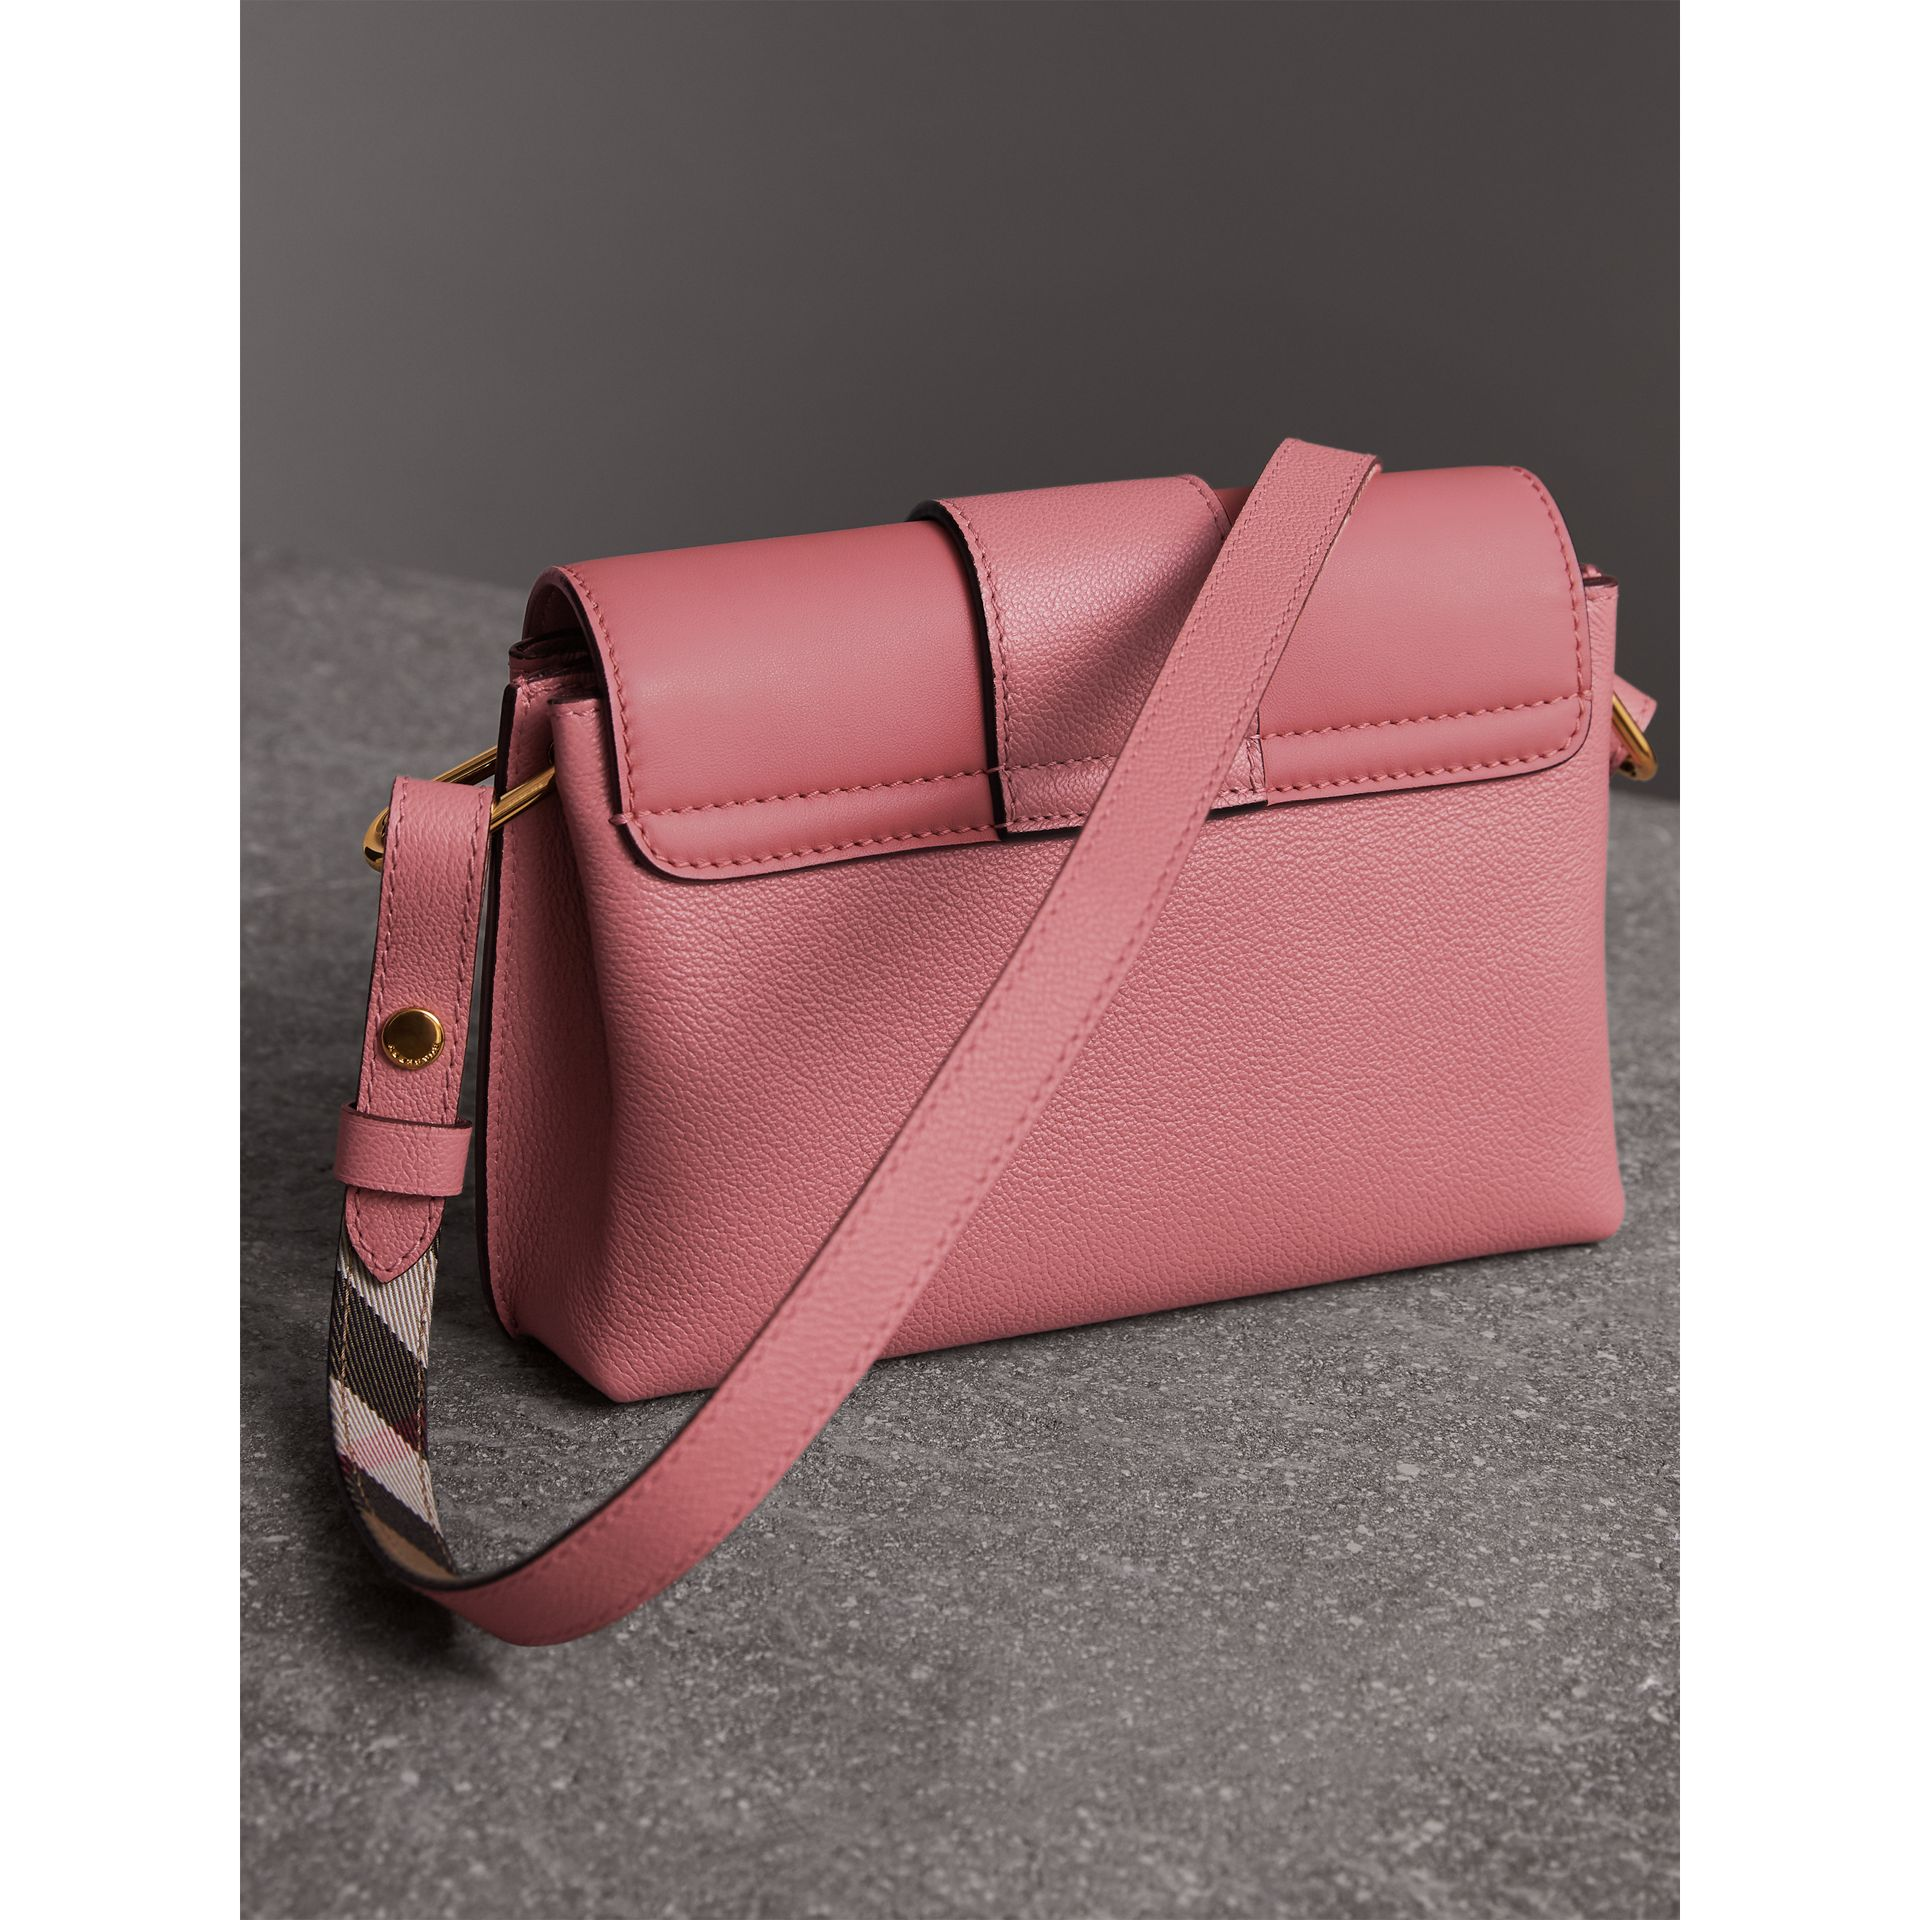 The Buckle Crossbody Bag in Leather in Dusty Pink - Women | Burberry Singapore - gallery image 5